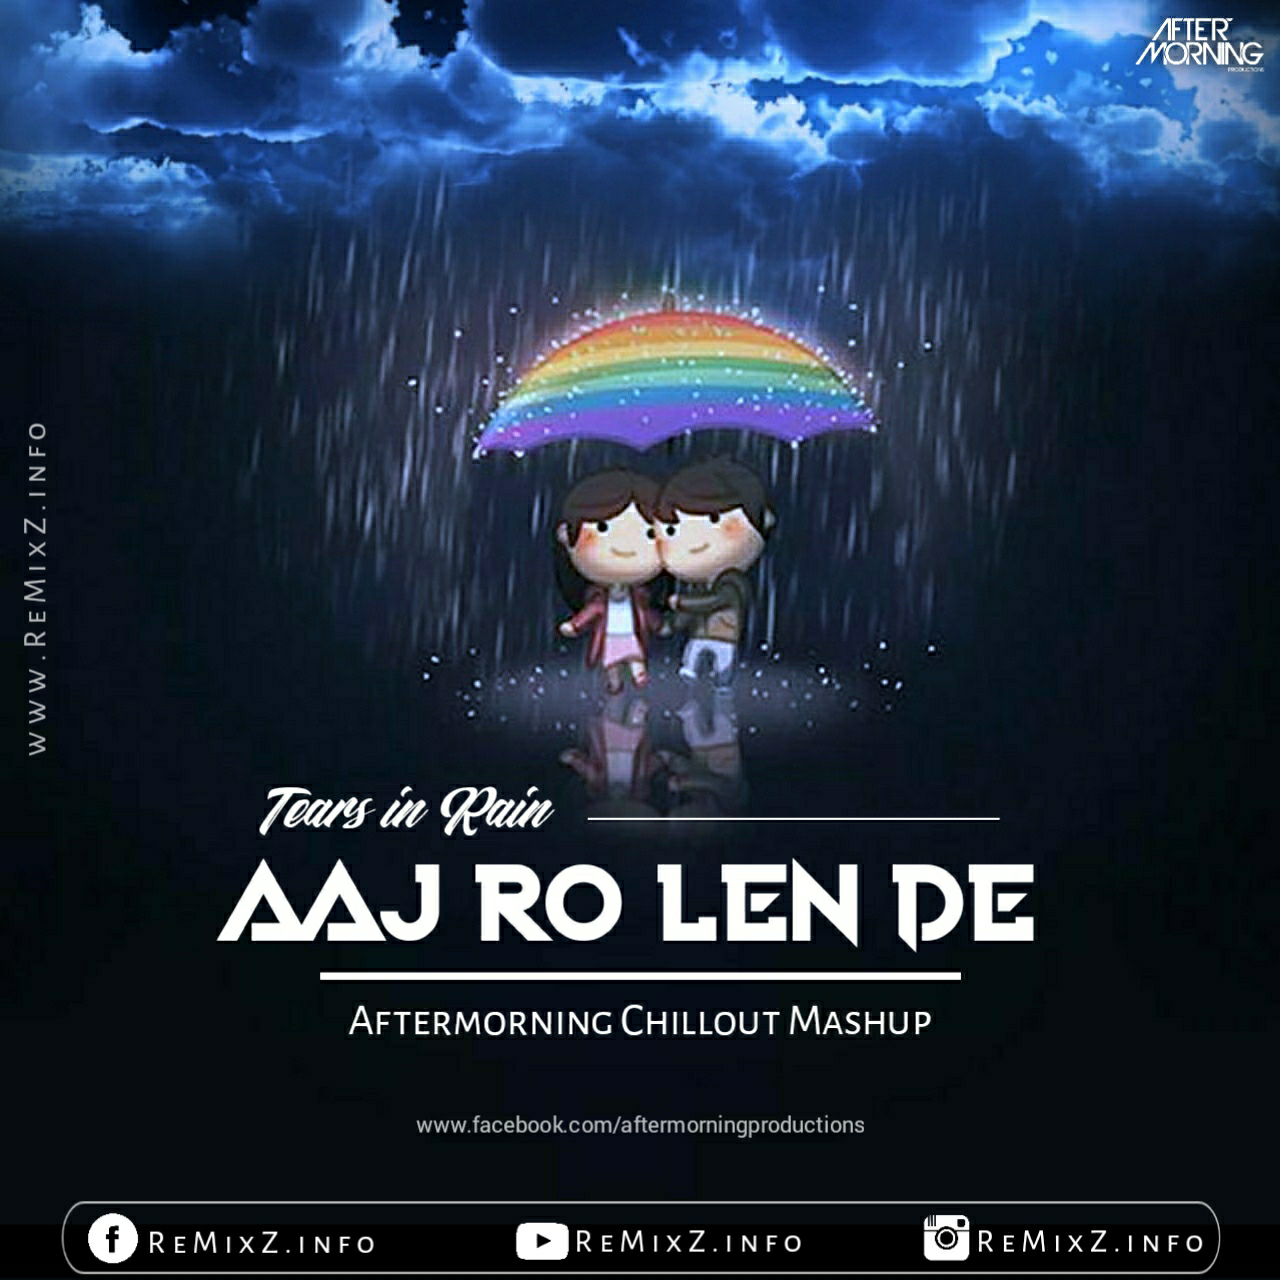 tears-in-rain-mashup-aaj-ro-len-de-Aftermorning-Chillout.jpg